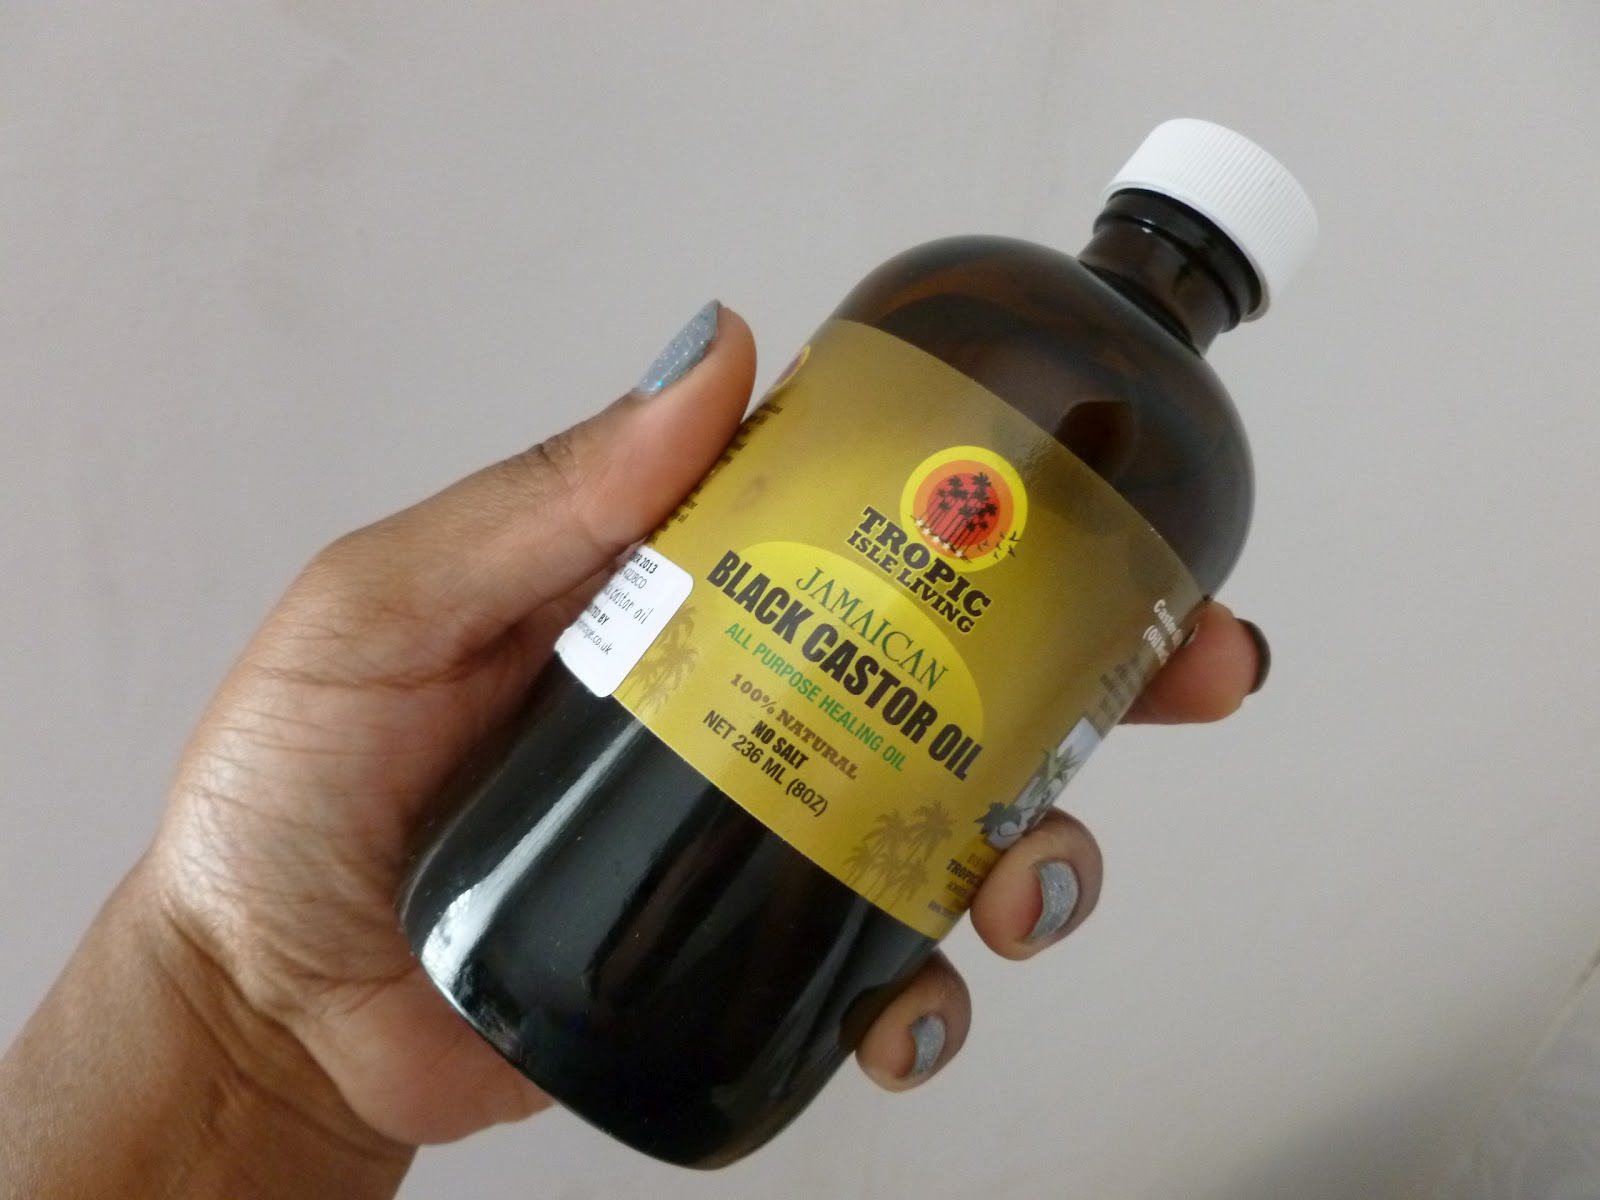 Theme of the day jamaican black castor oil for hair growth - An Error Occurred